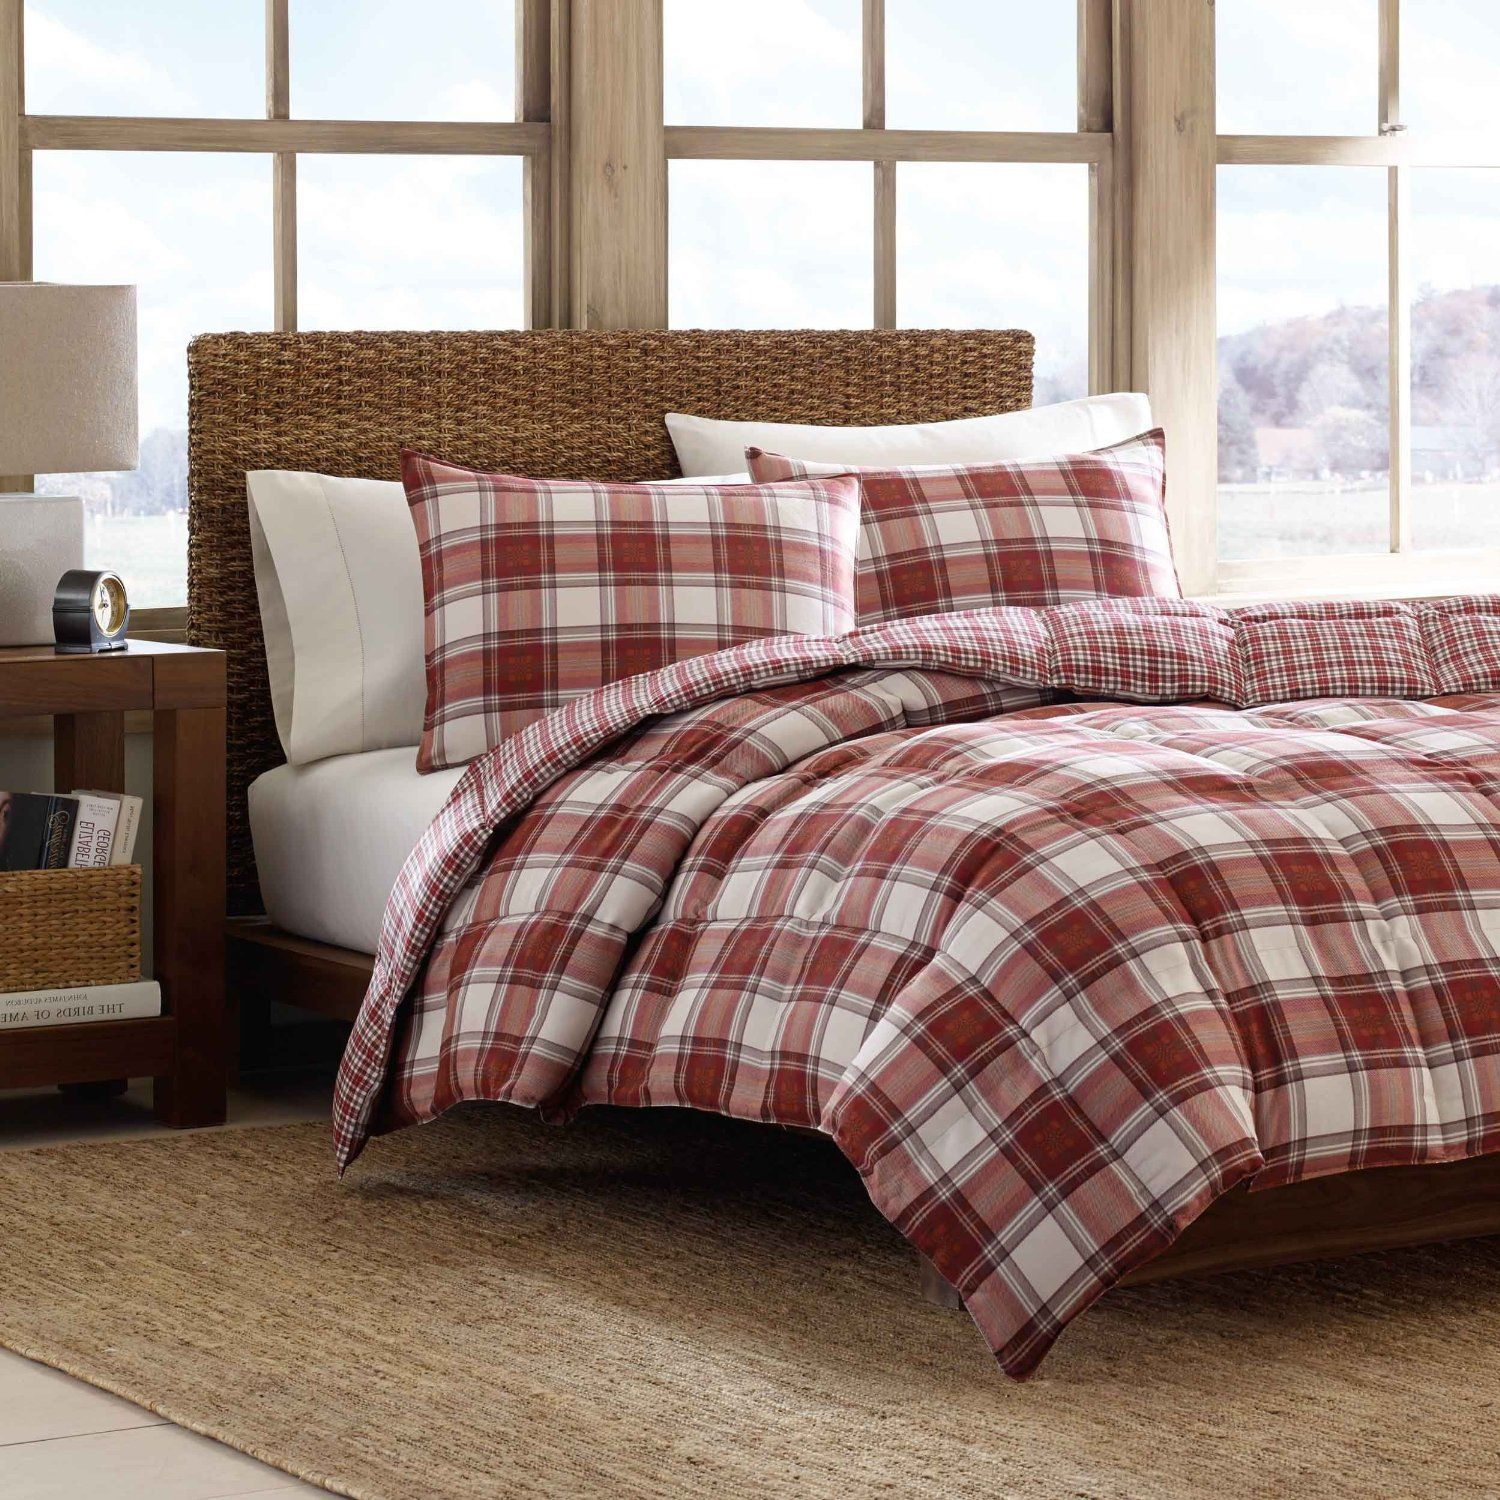 Luxe Bedspreien Nautica Quilt Red Google Search Home Decorating Pinterest